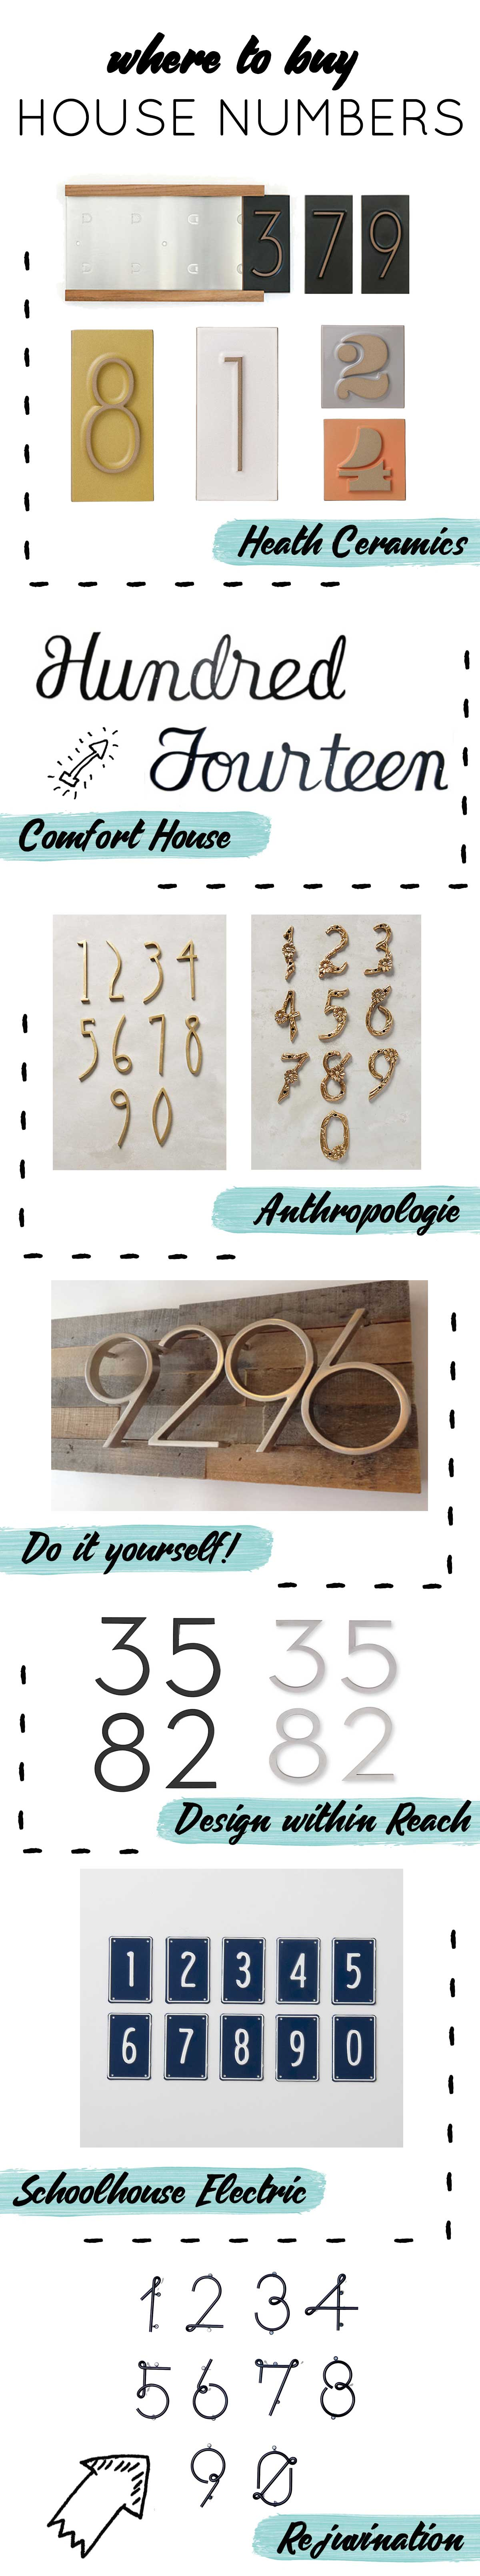 where_to_buy_house_numbers